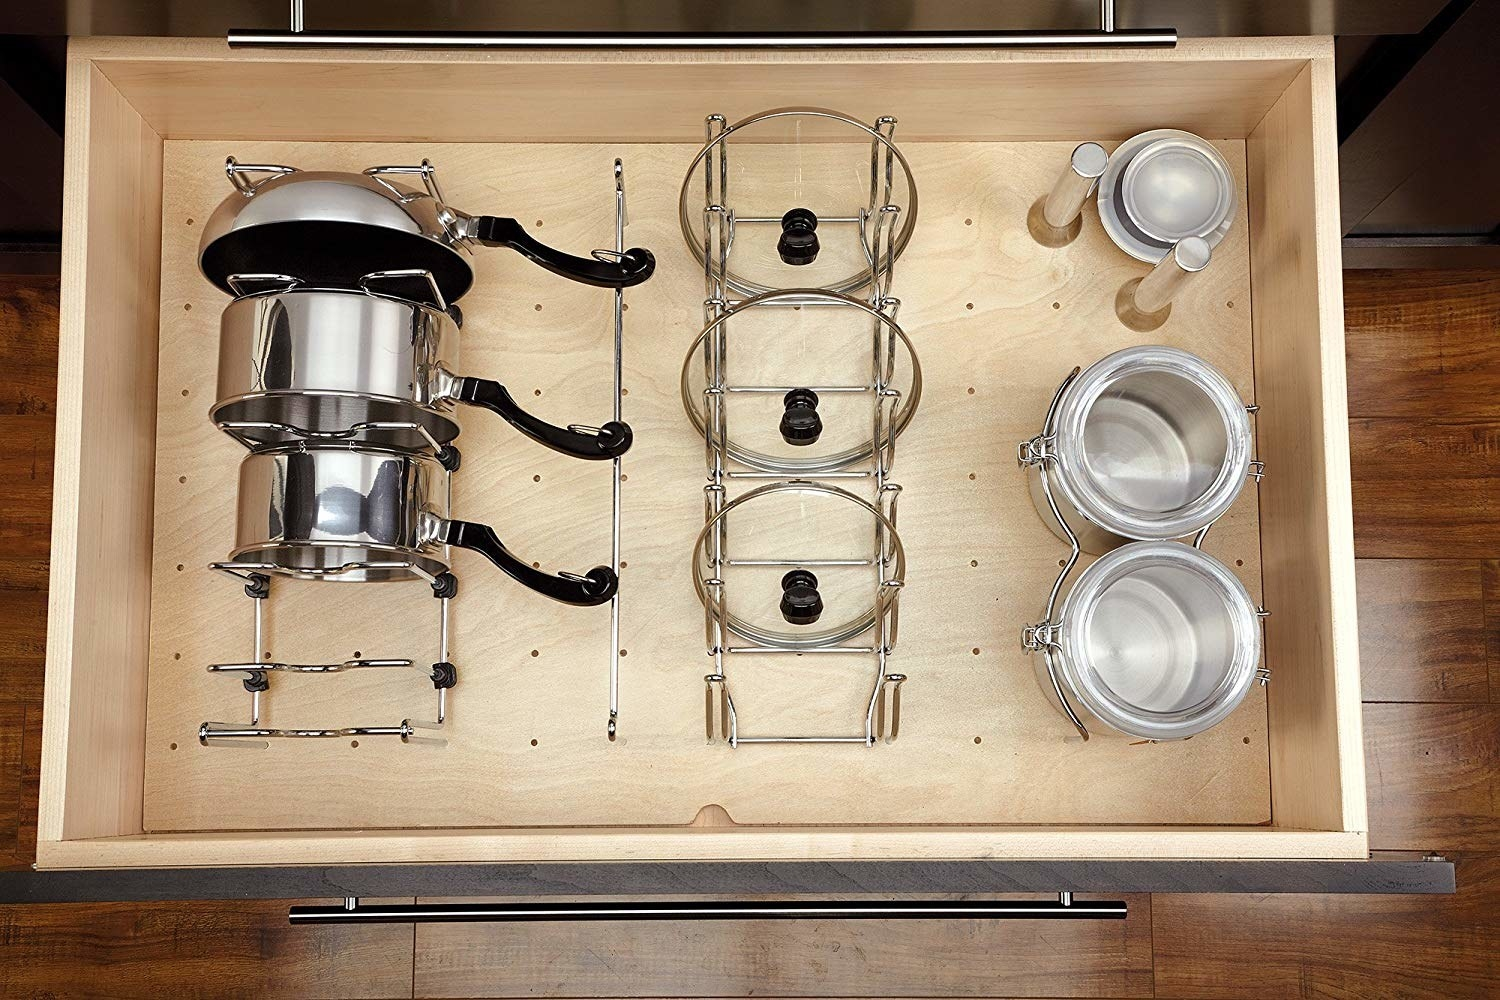 open kitchen drawer with a peg board bottom and adjustable organizers to hold pans and lids